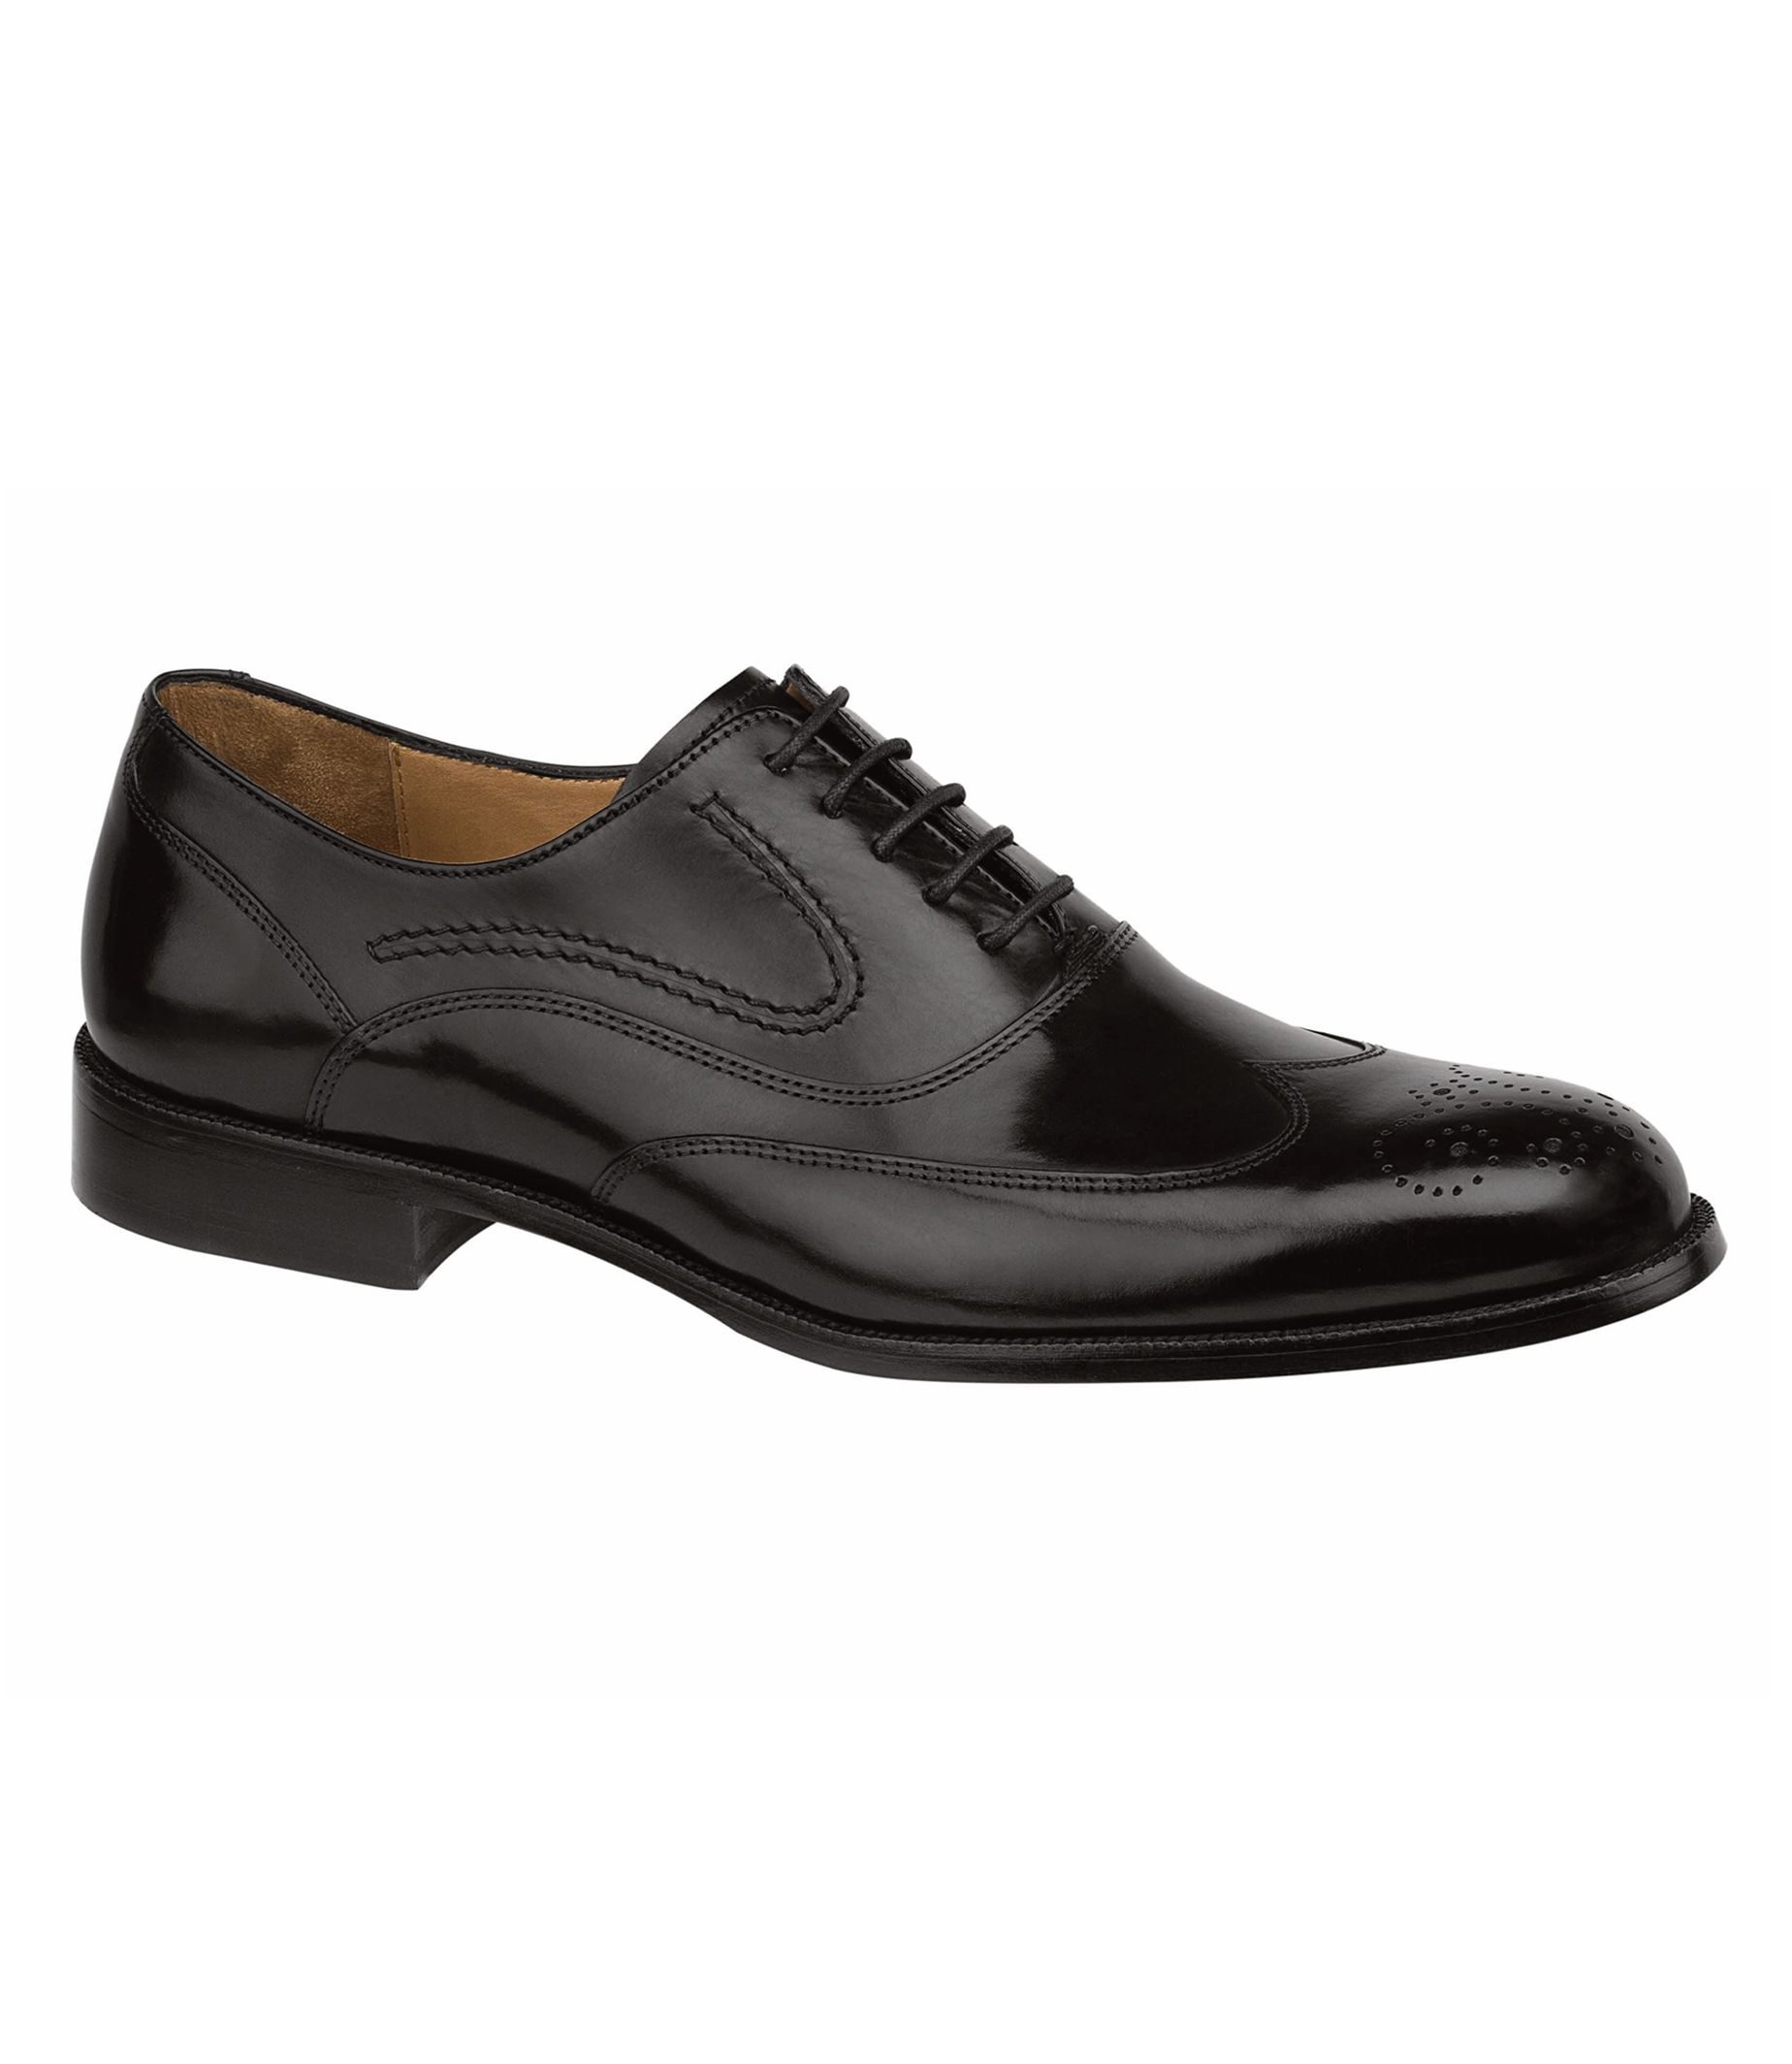 Stratton Wingtip Shoe by Johnston and Murphy